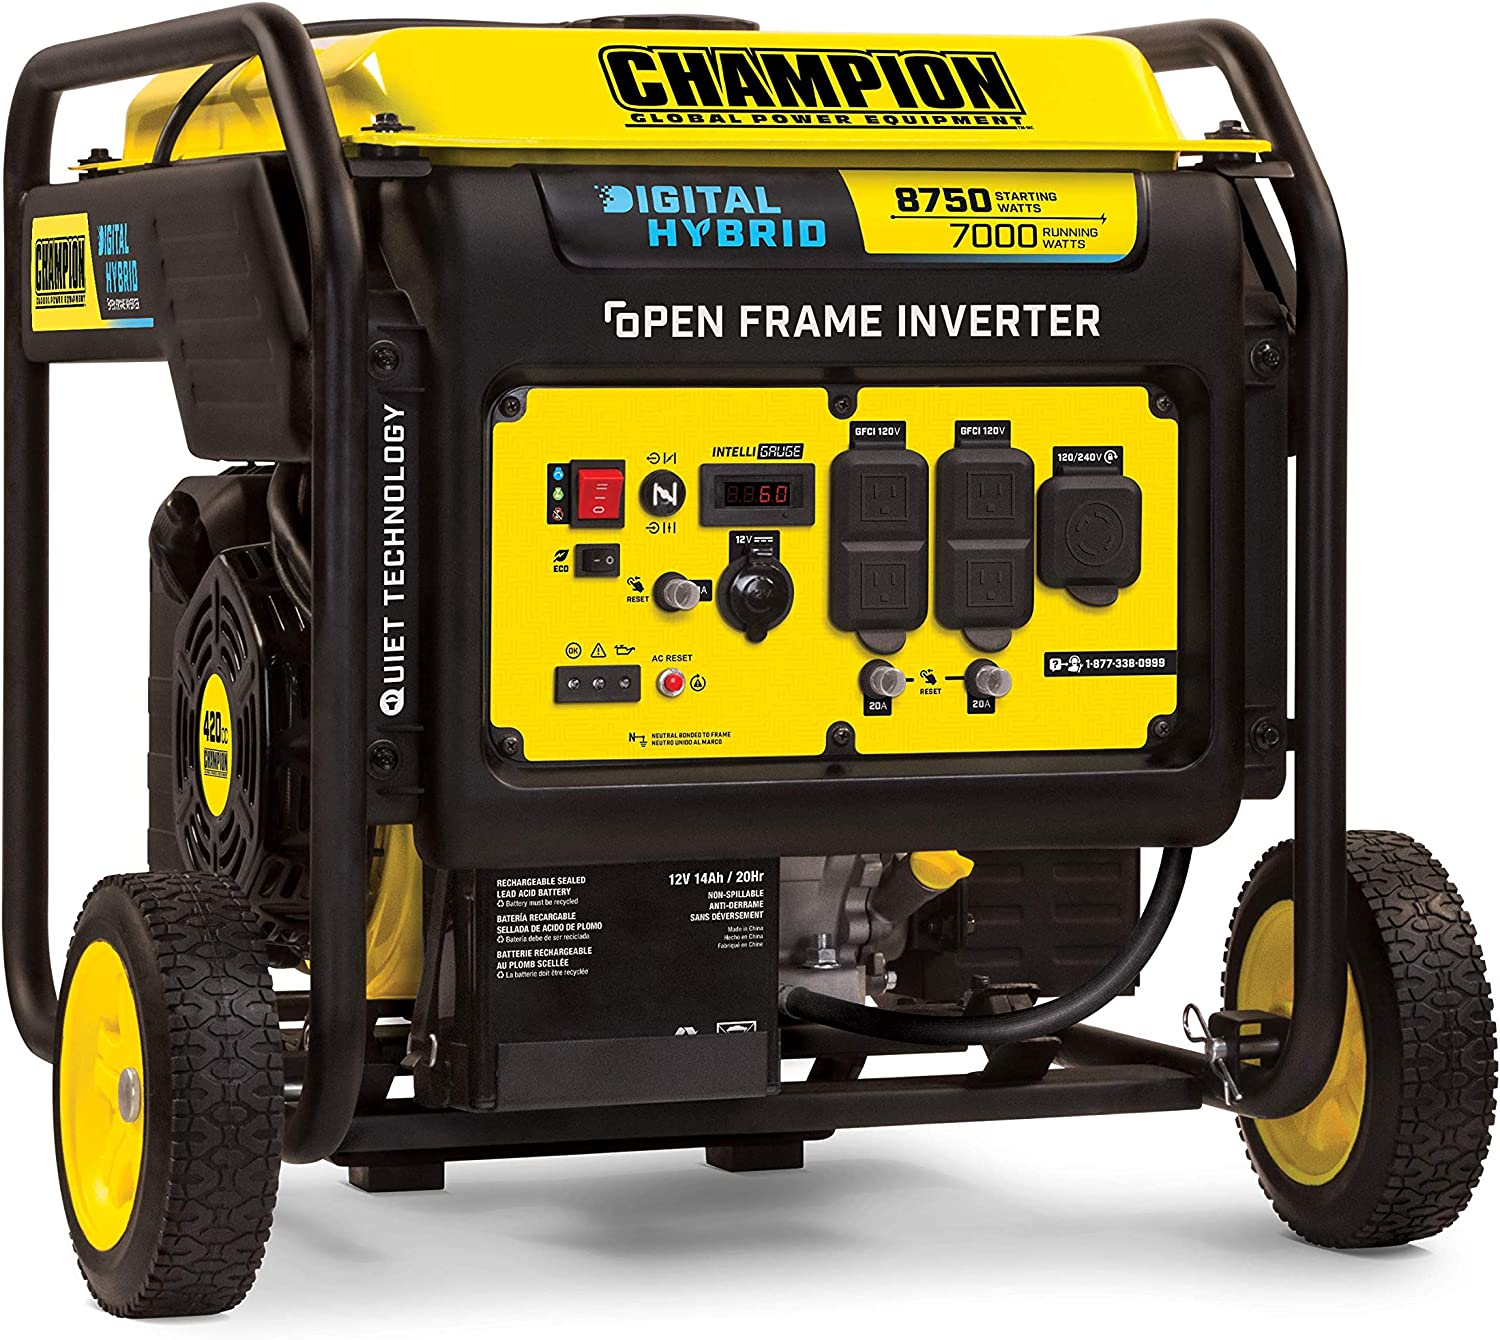 Champion Power Equipment 100520 8750-Watt DH Series Open Frame Inverter with Electric Start, Black/Yellow